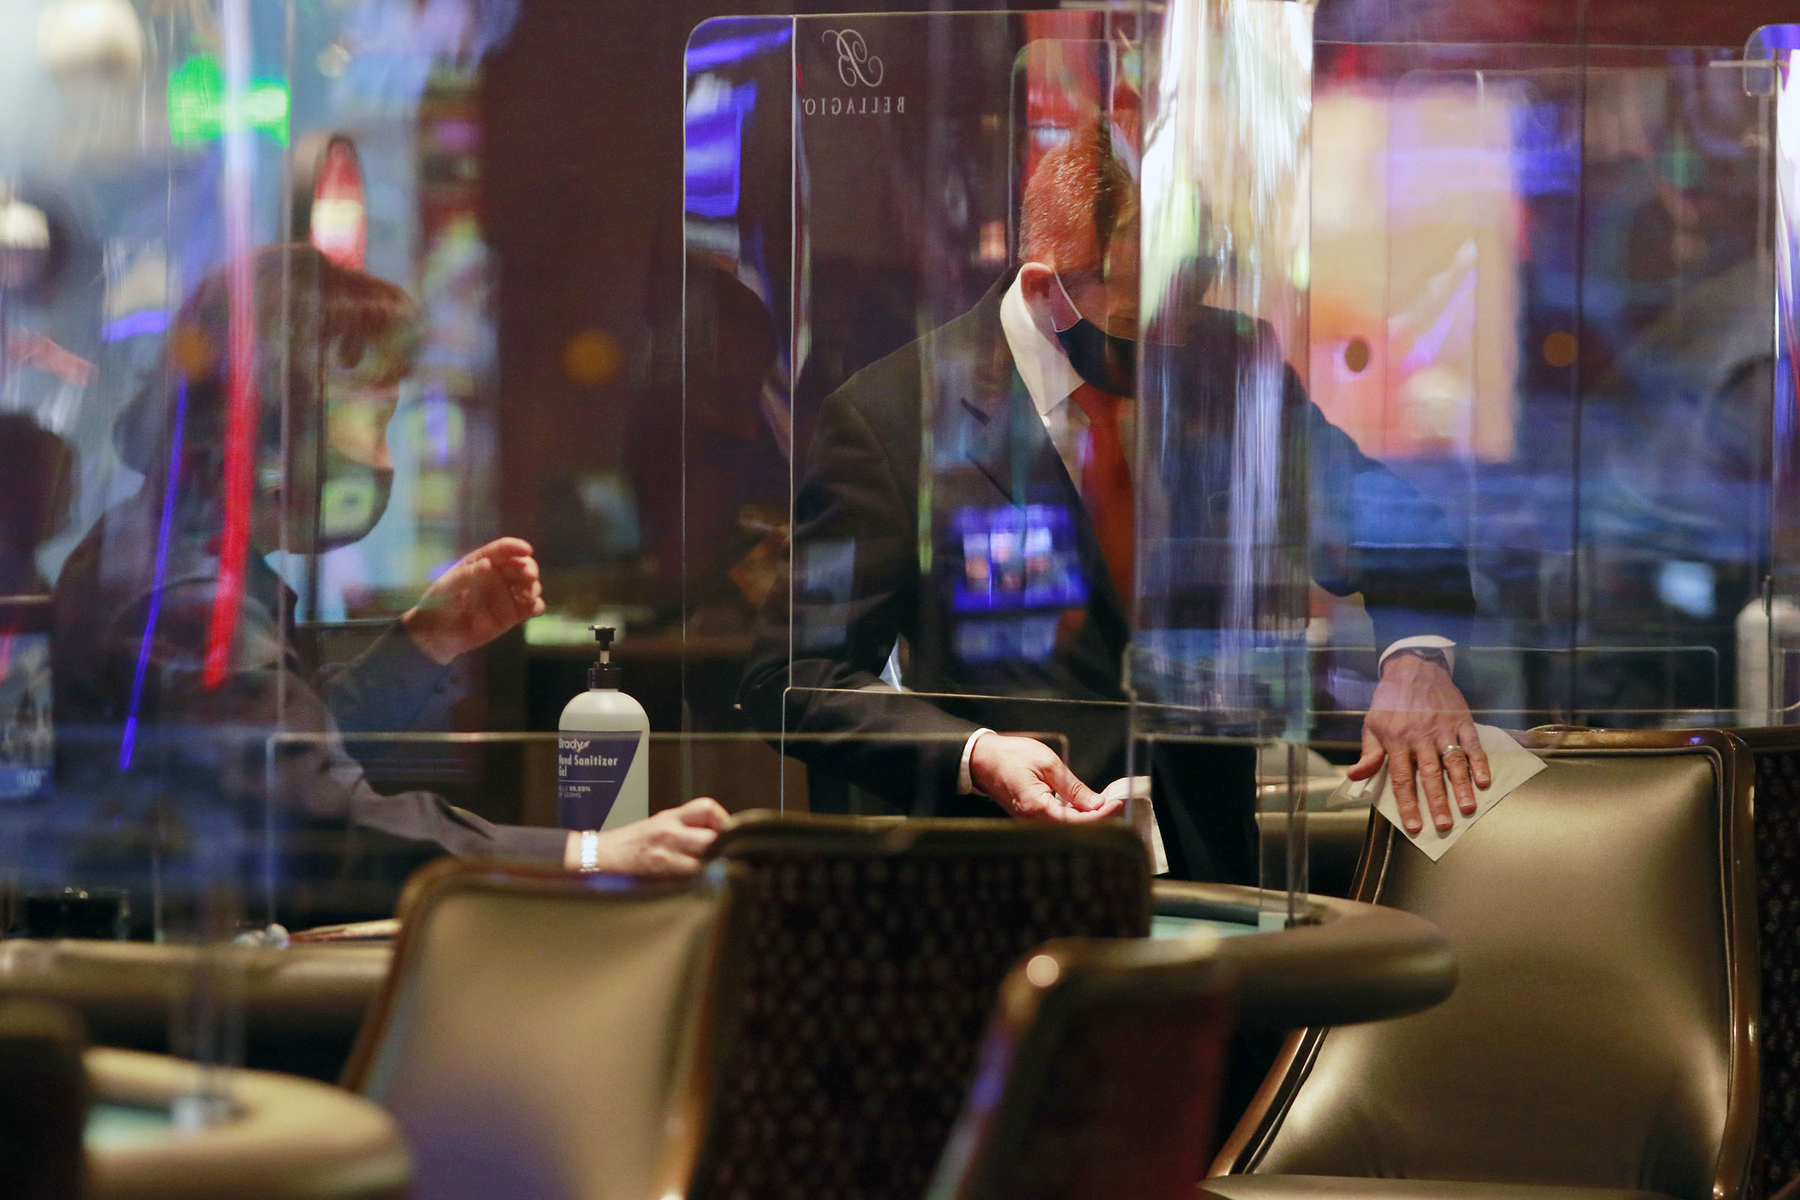 Staff sanitize a table game area between game play at the reopening of Bellagio hotel-casino Thursday, June 4, 2020, in Las Vegas. (Photo by Ronda Churchill/AFP)